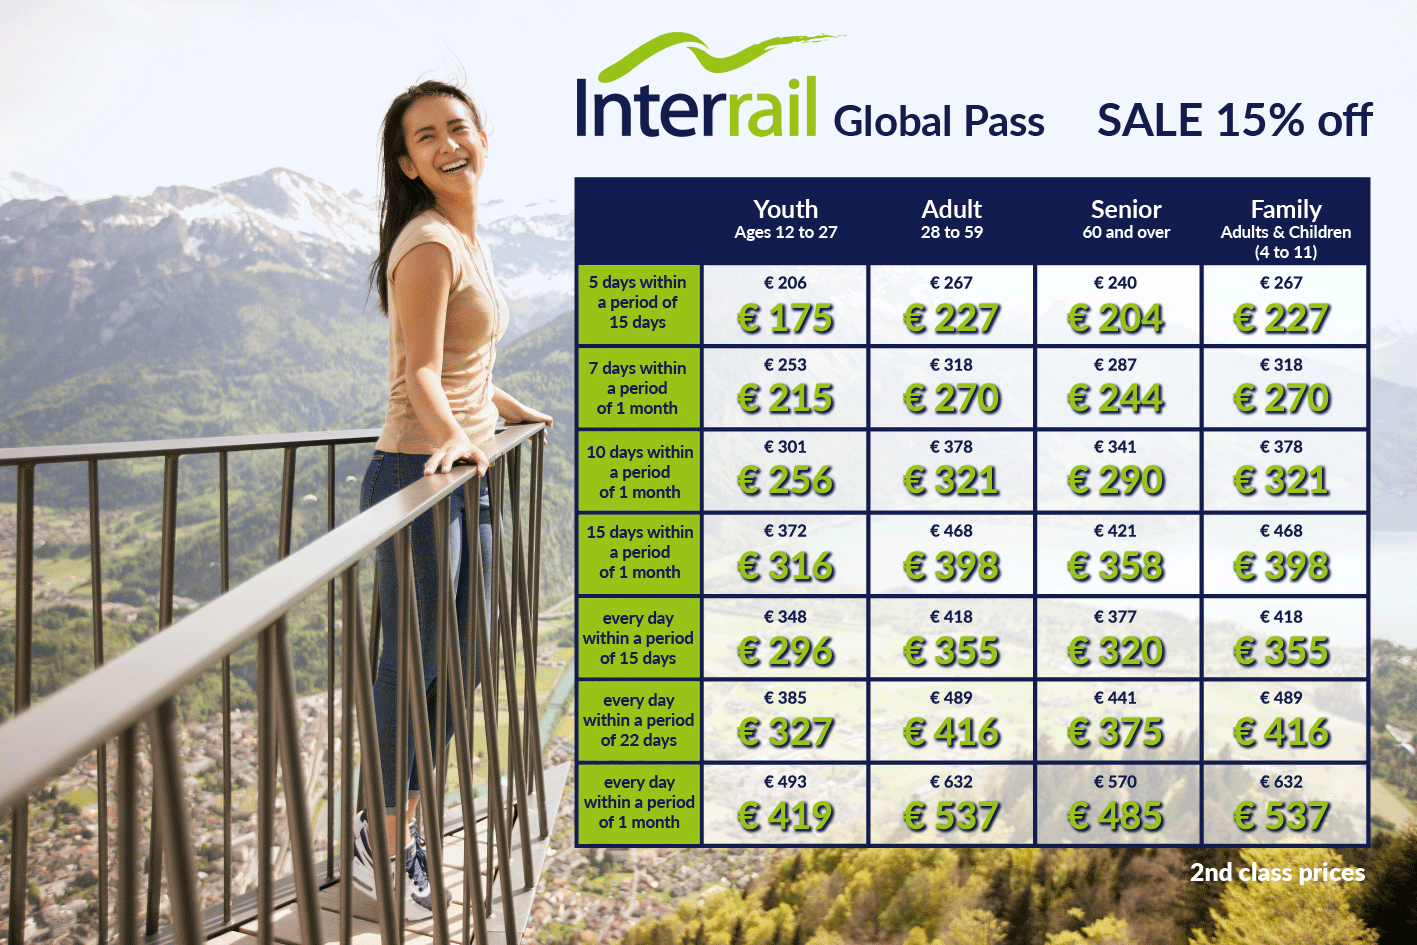 InterRail Global Pass discount prices